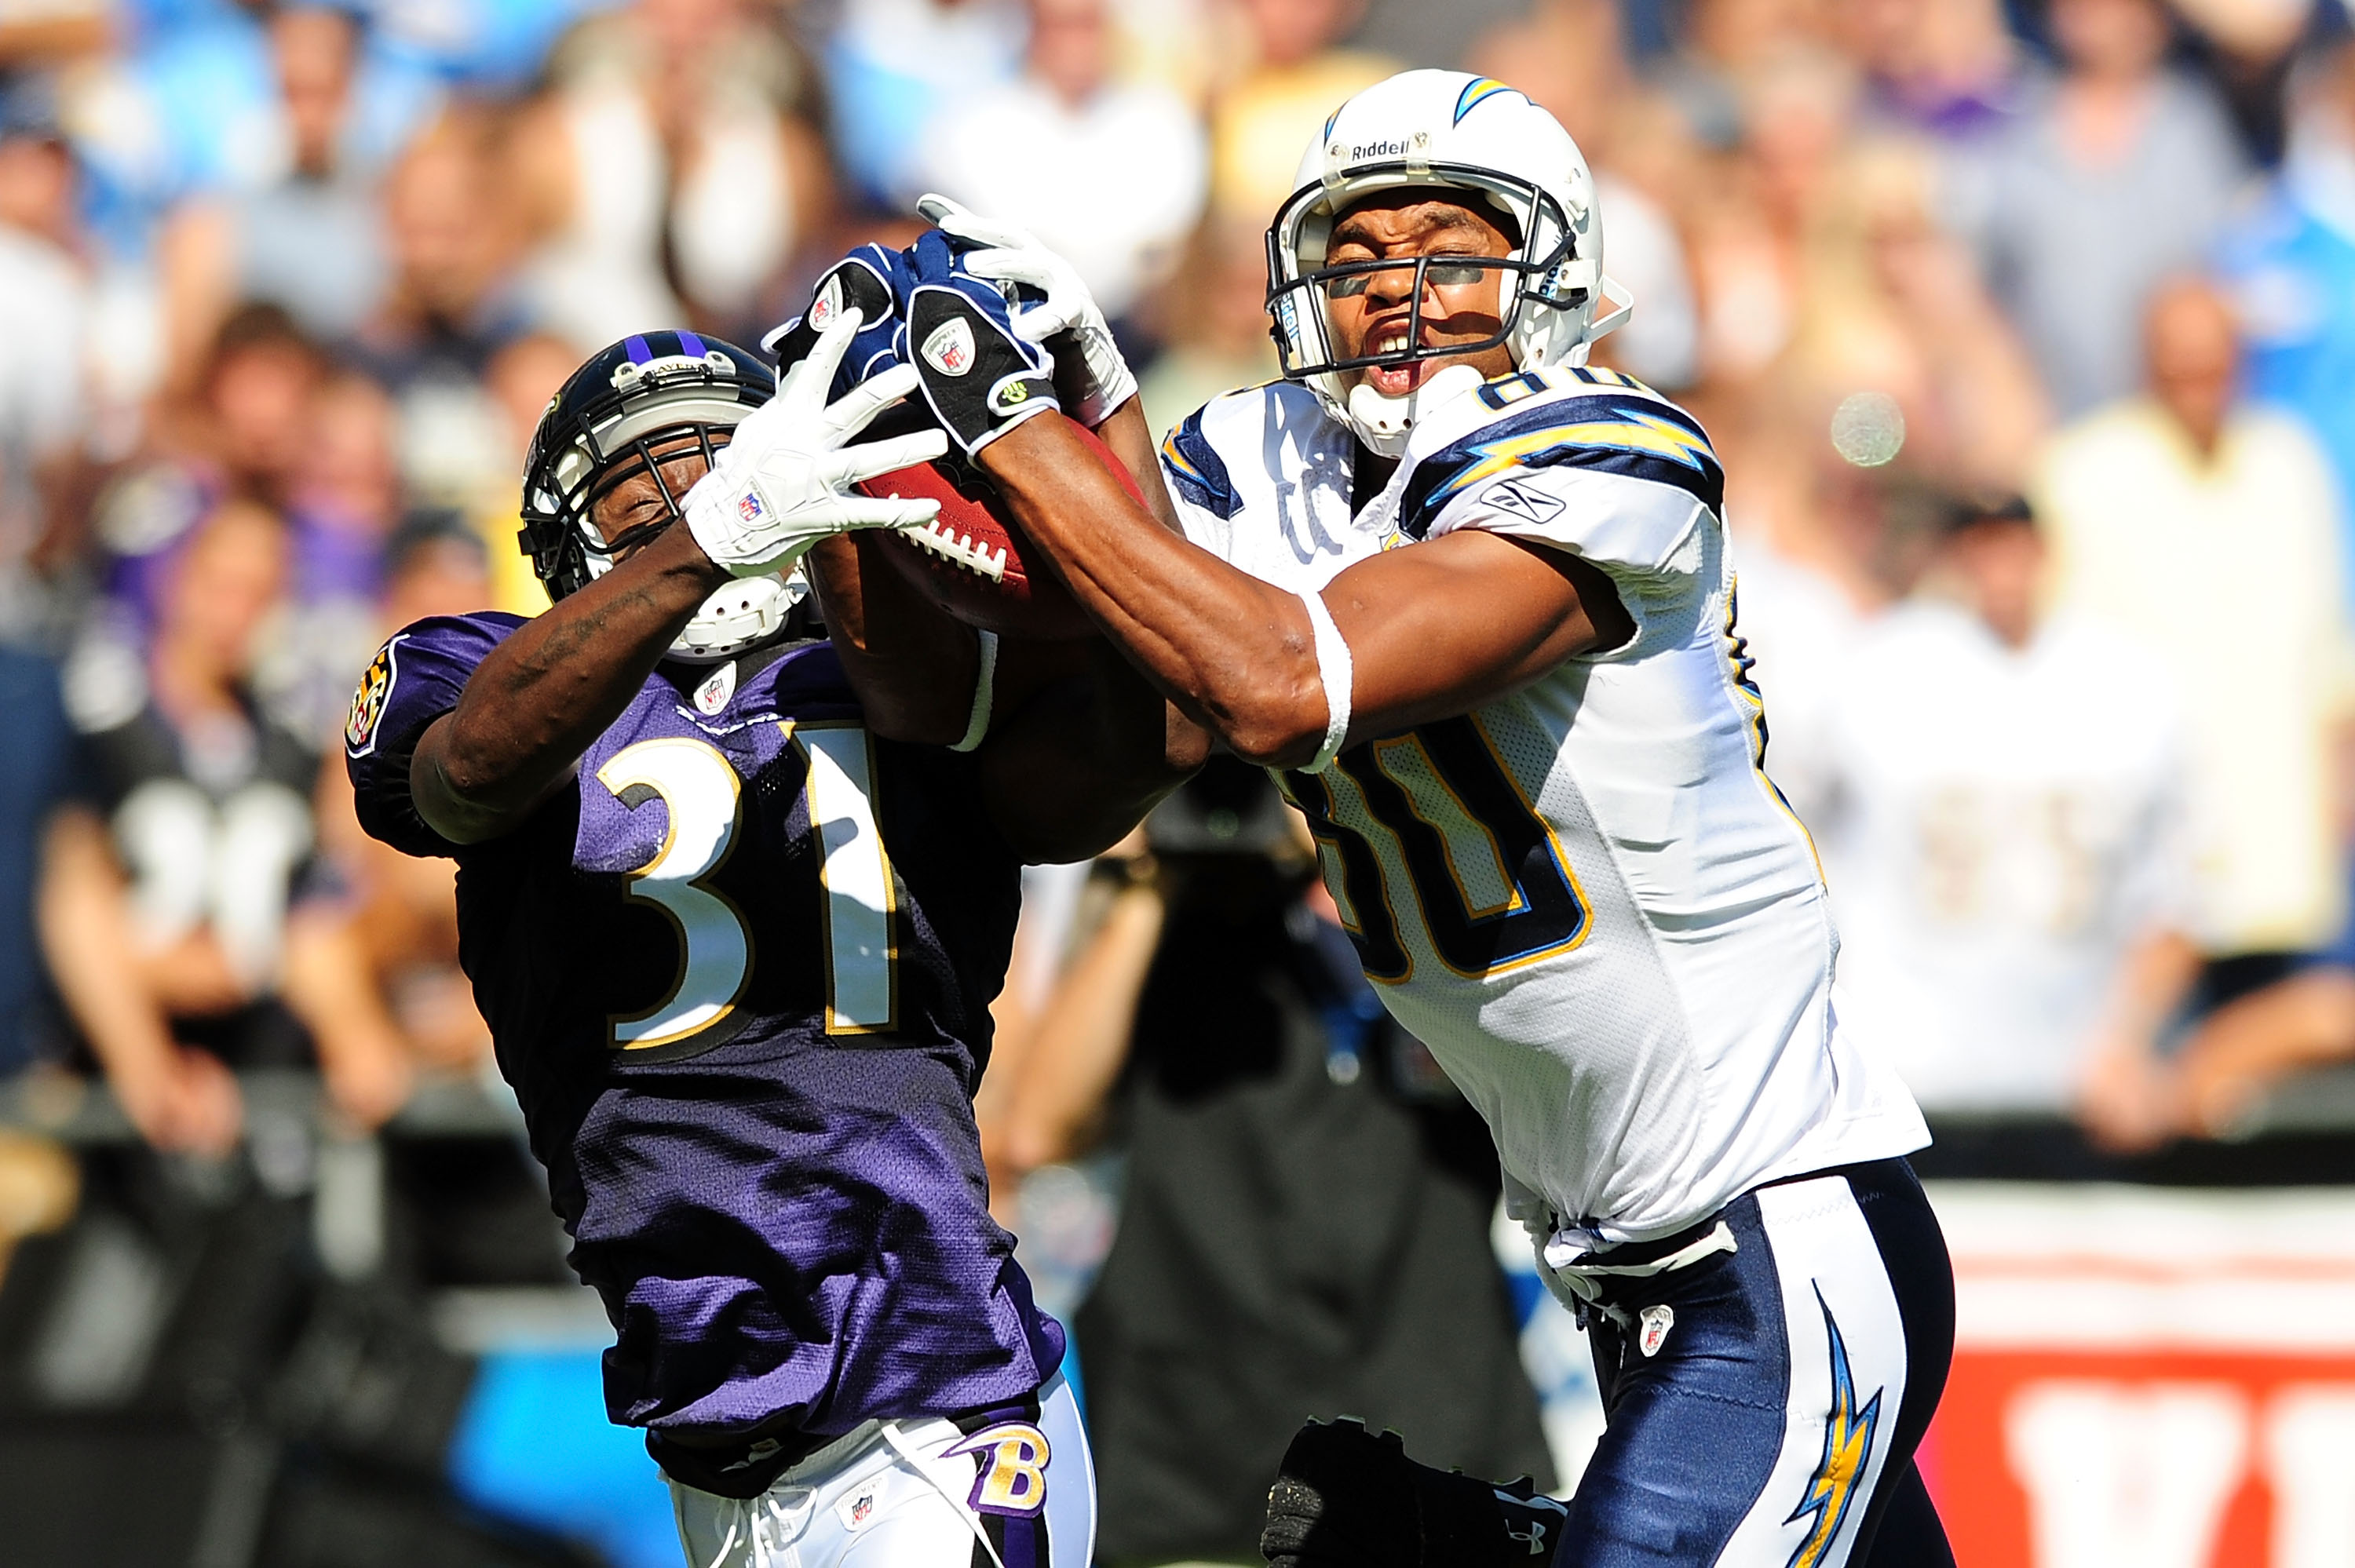 SAN DIEGO - SEPTEMBER 20:Malcolm Floyd #80 of the San Diego Chargers and Fabian Washington #31 of the Baltimore Ravens both catch the ball  at Qualcomm Stadium on September 20, 2009 in San Diego, California.  (Photo by Jacob de Golish/Getty Images)